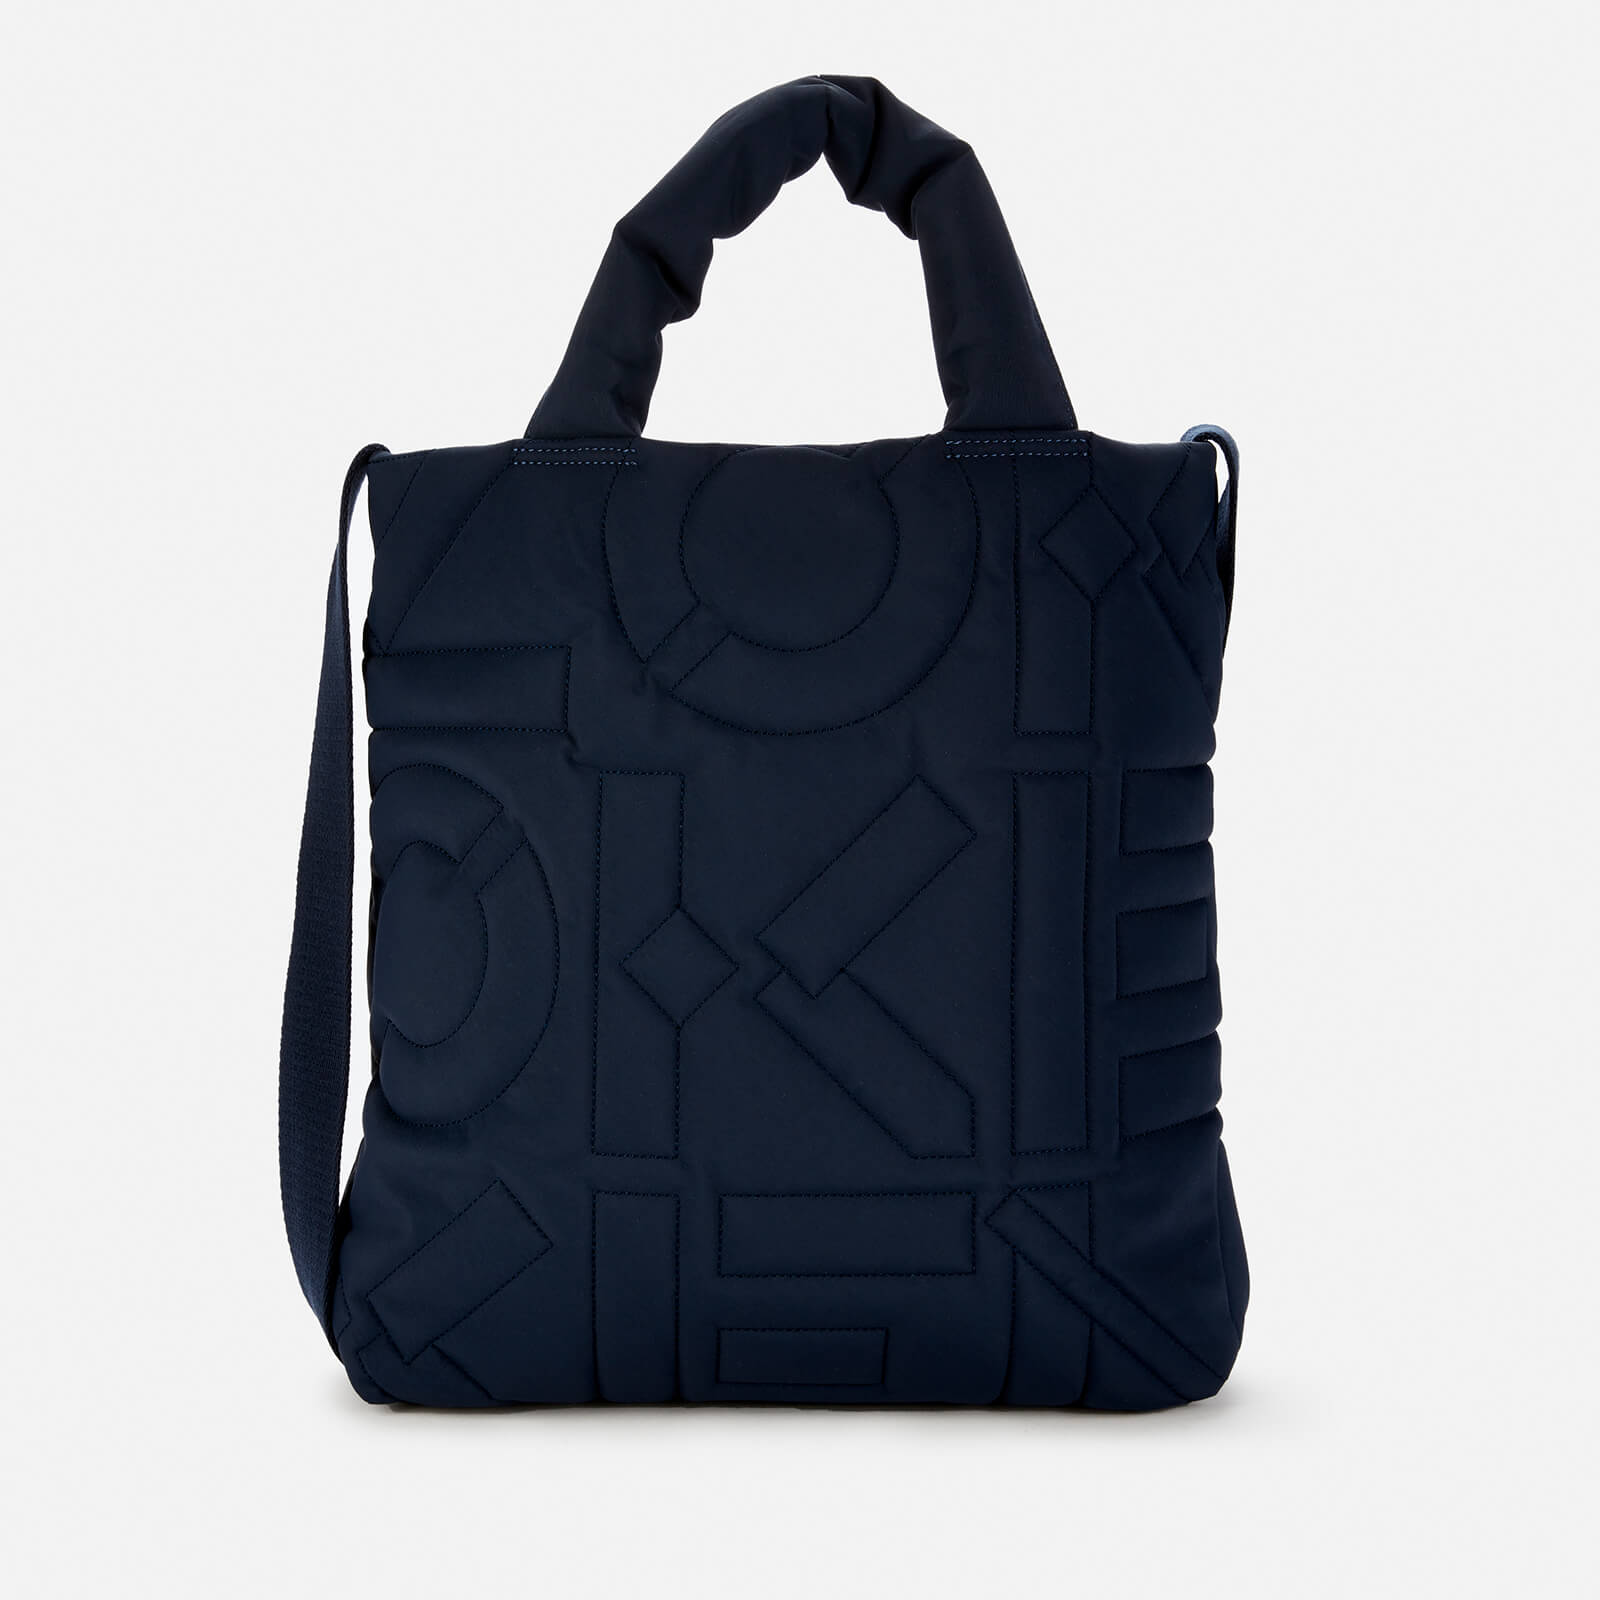 KENZO Women's Quilted Monogram Recycle Tote Bag - Navy Blue